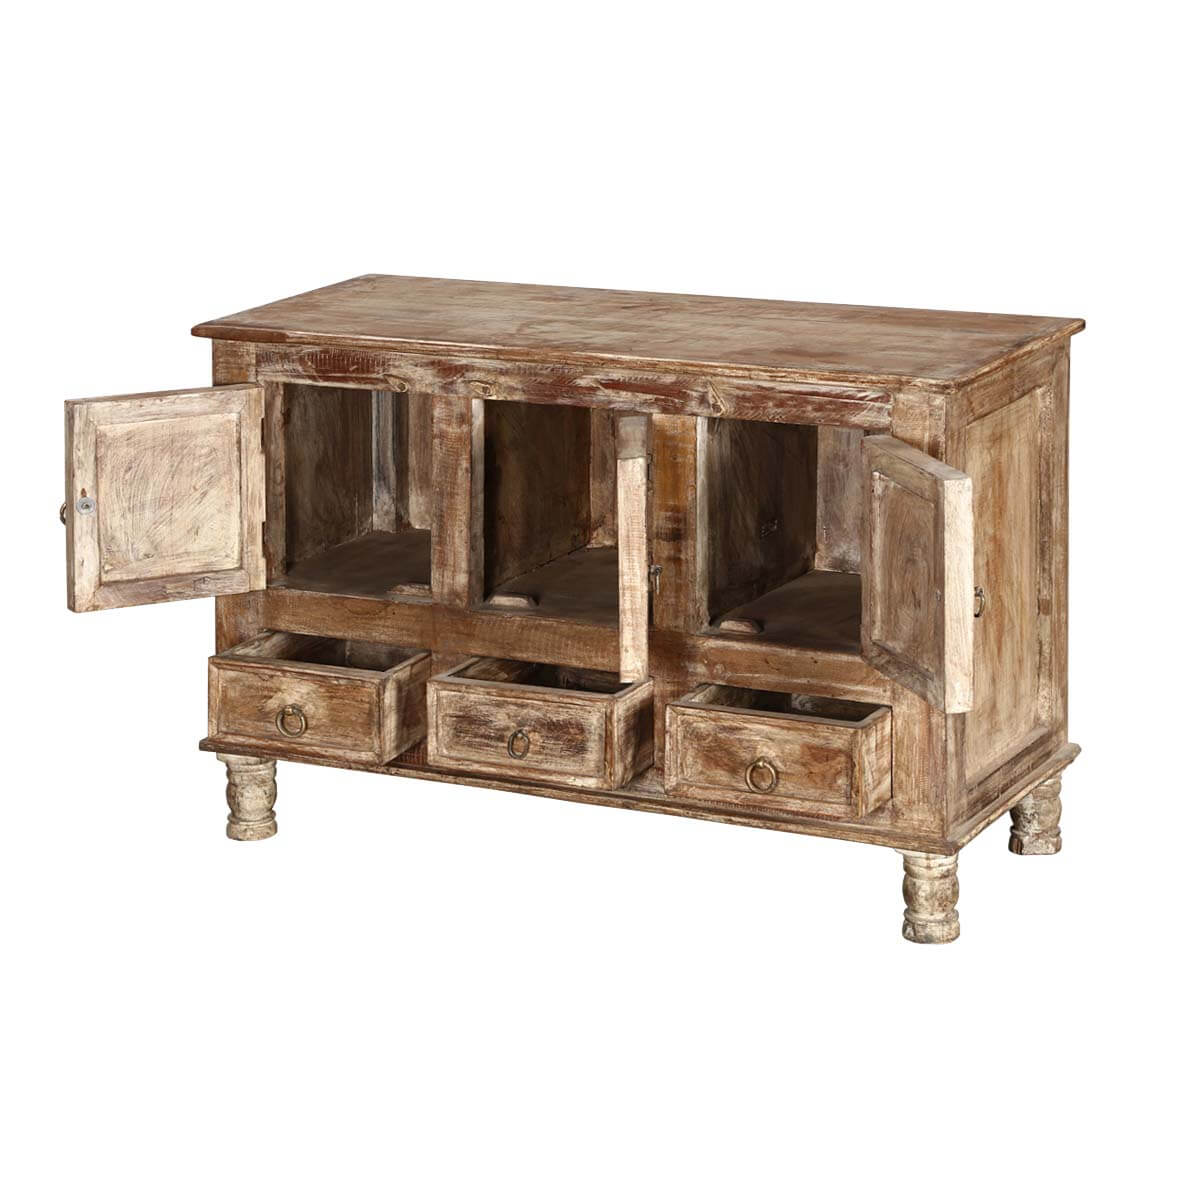 Le Meilleur Brice Distressed Finish 3 Door 3 Drawer Sideboard Cabinet Ce Mois Ci